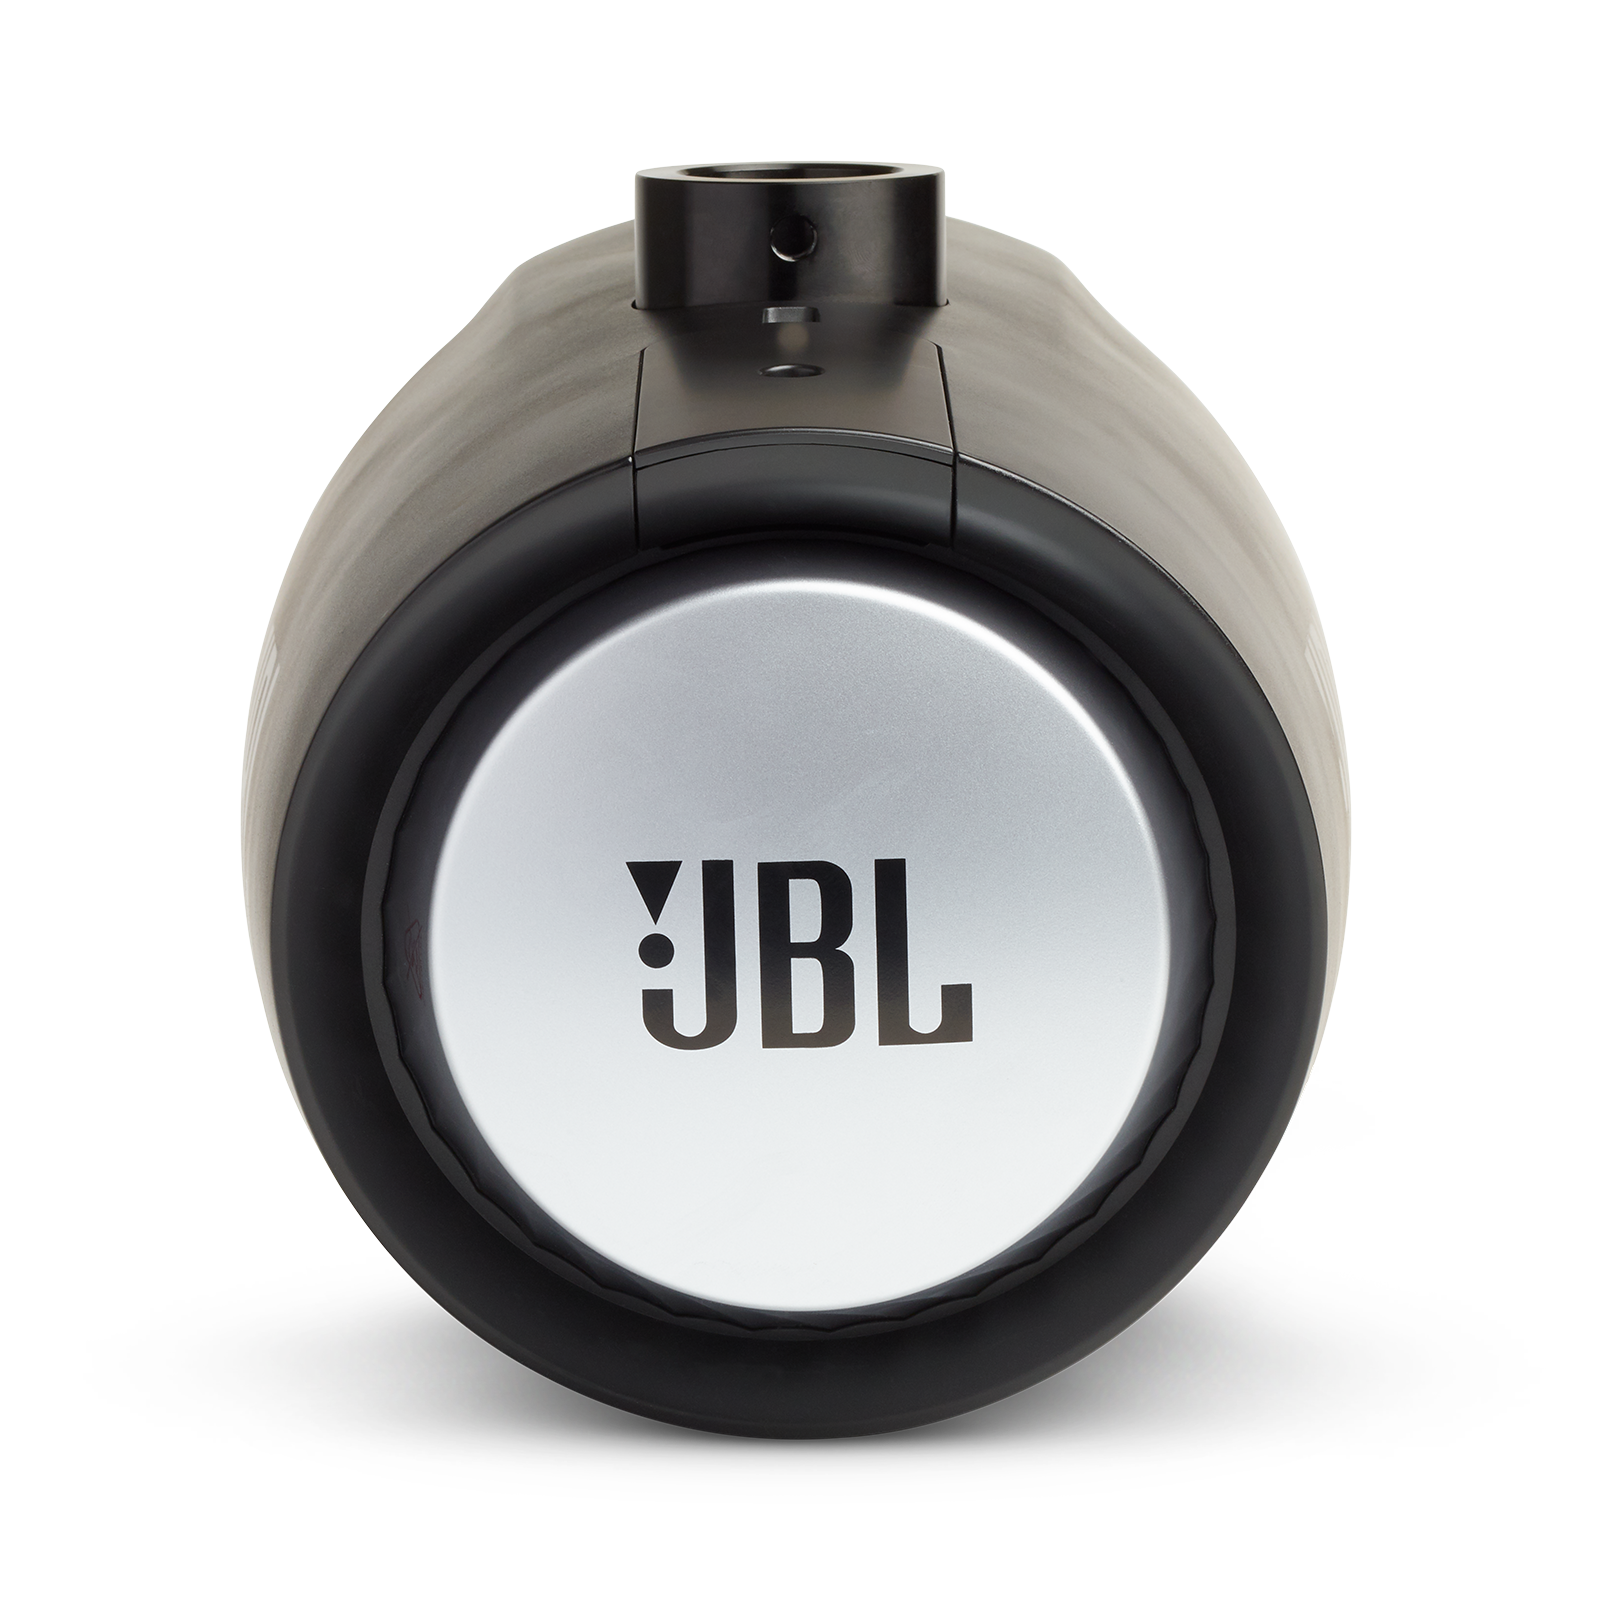 "JBL Tower X Marine MT6HLB - Black Gloss - 6-1/2"" (160mm) enclosed two-way marine audio tower speaker with 1"" (25mm) horn loaded compression tweeter – Black - Back"